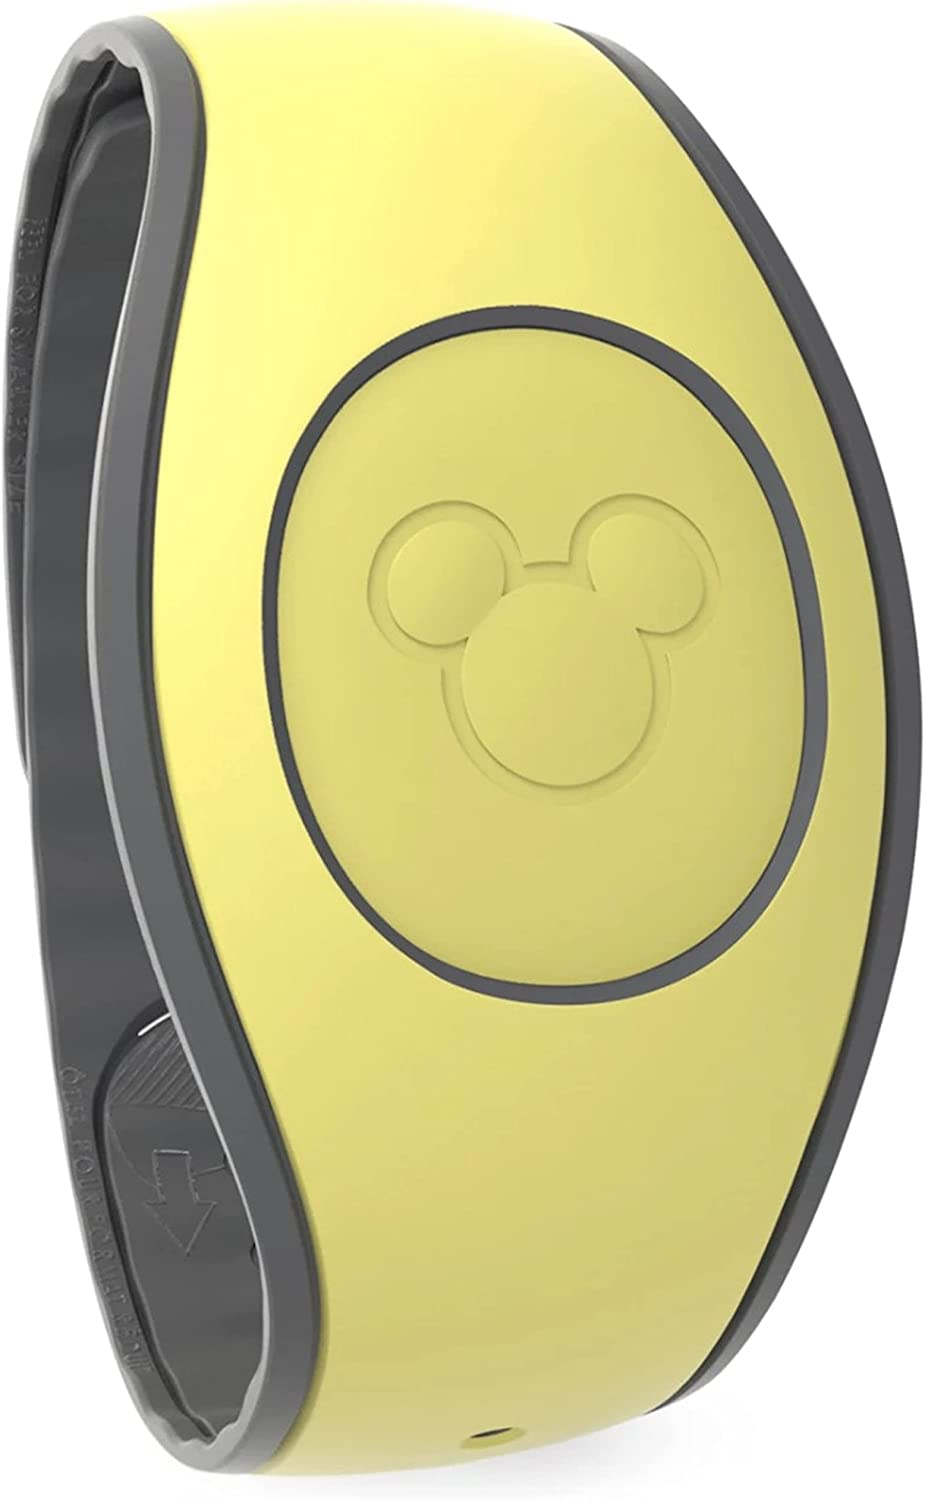 Disney Parks Exclusive - MagicBand 2.0 Link It Later - Soft Yellow